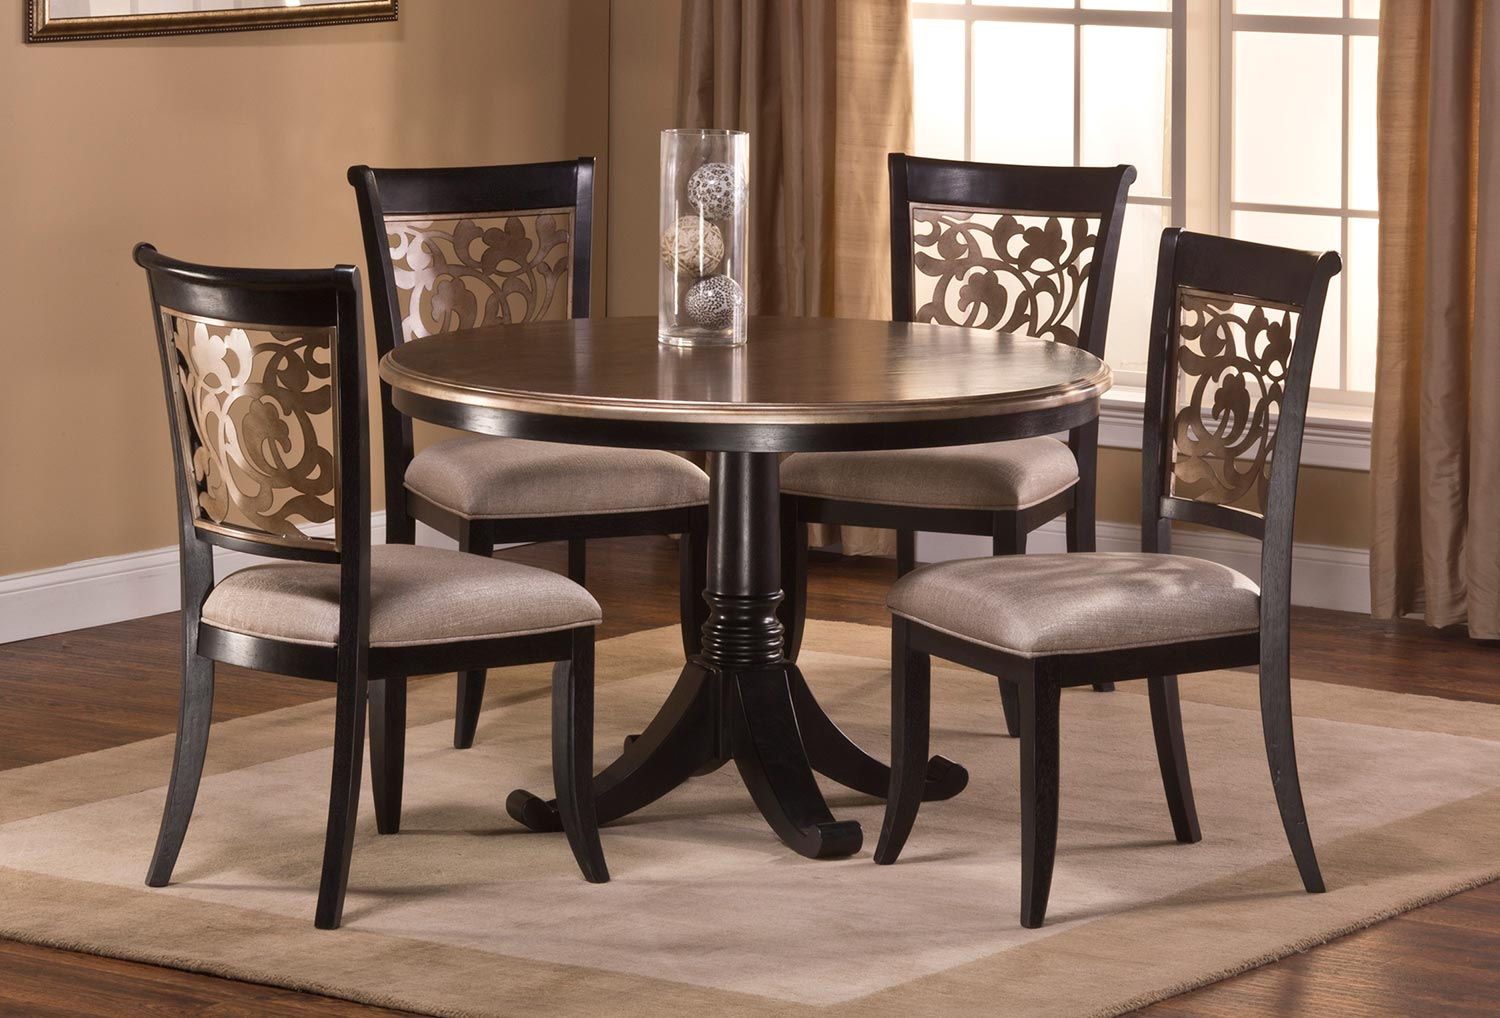 Hillsdale Bennington 5 PC Dining Set - Black Distressed Gray - Putty Fabric